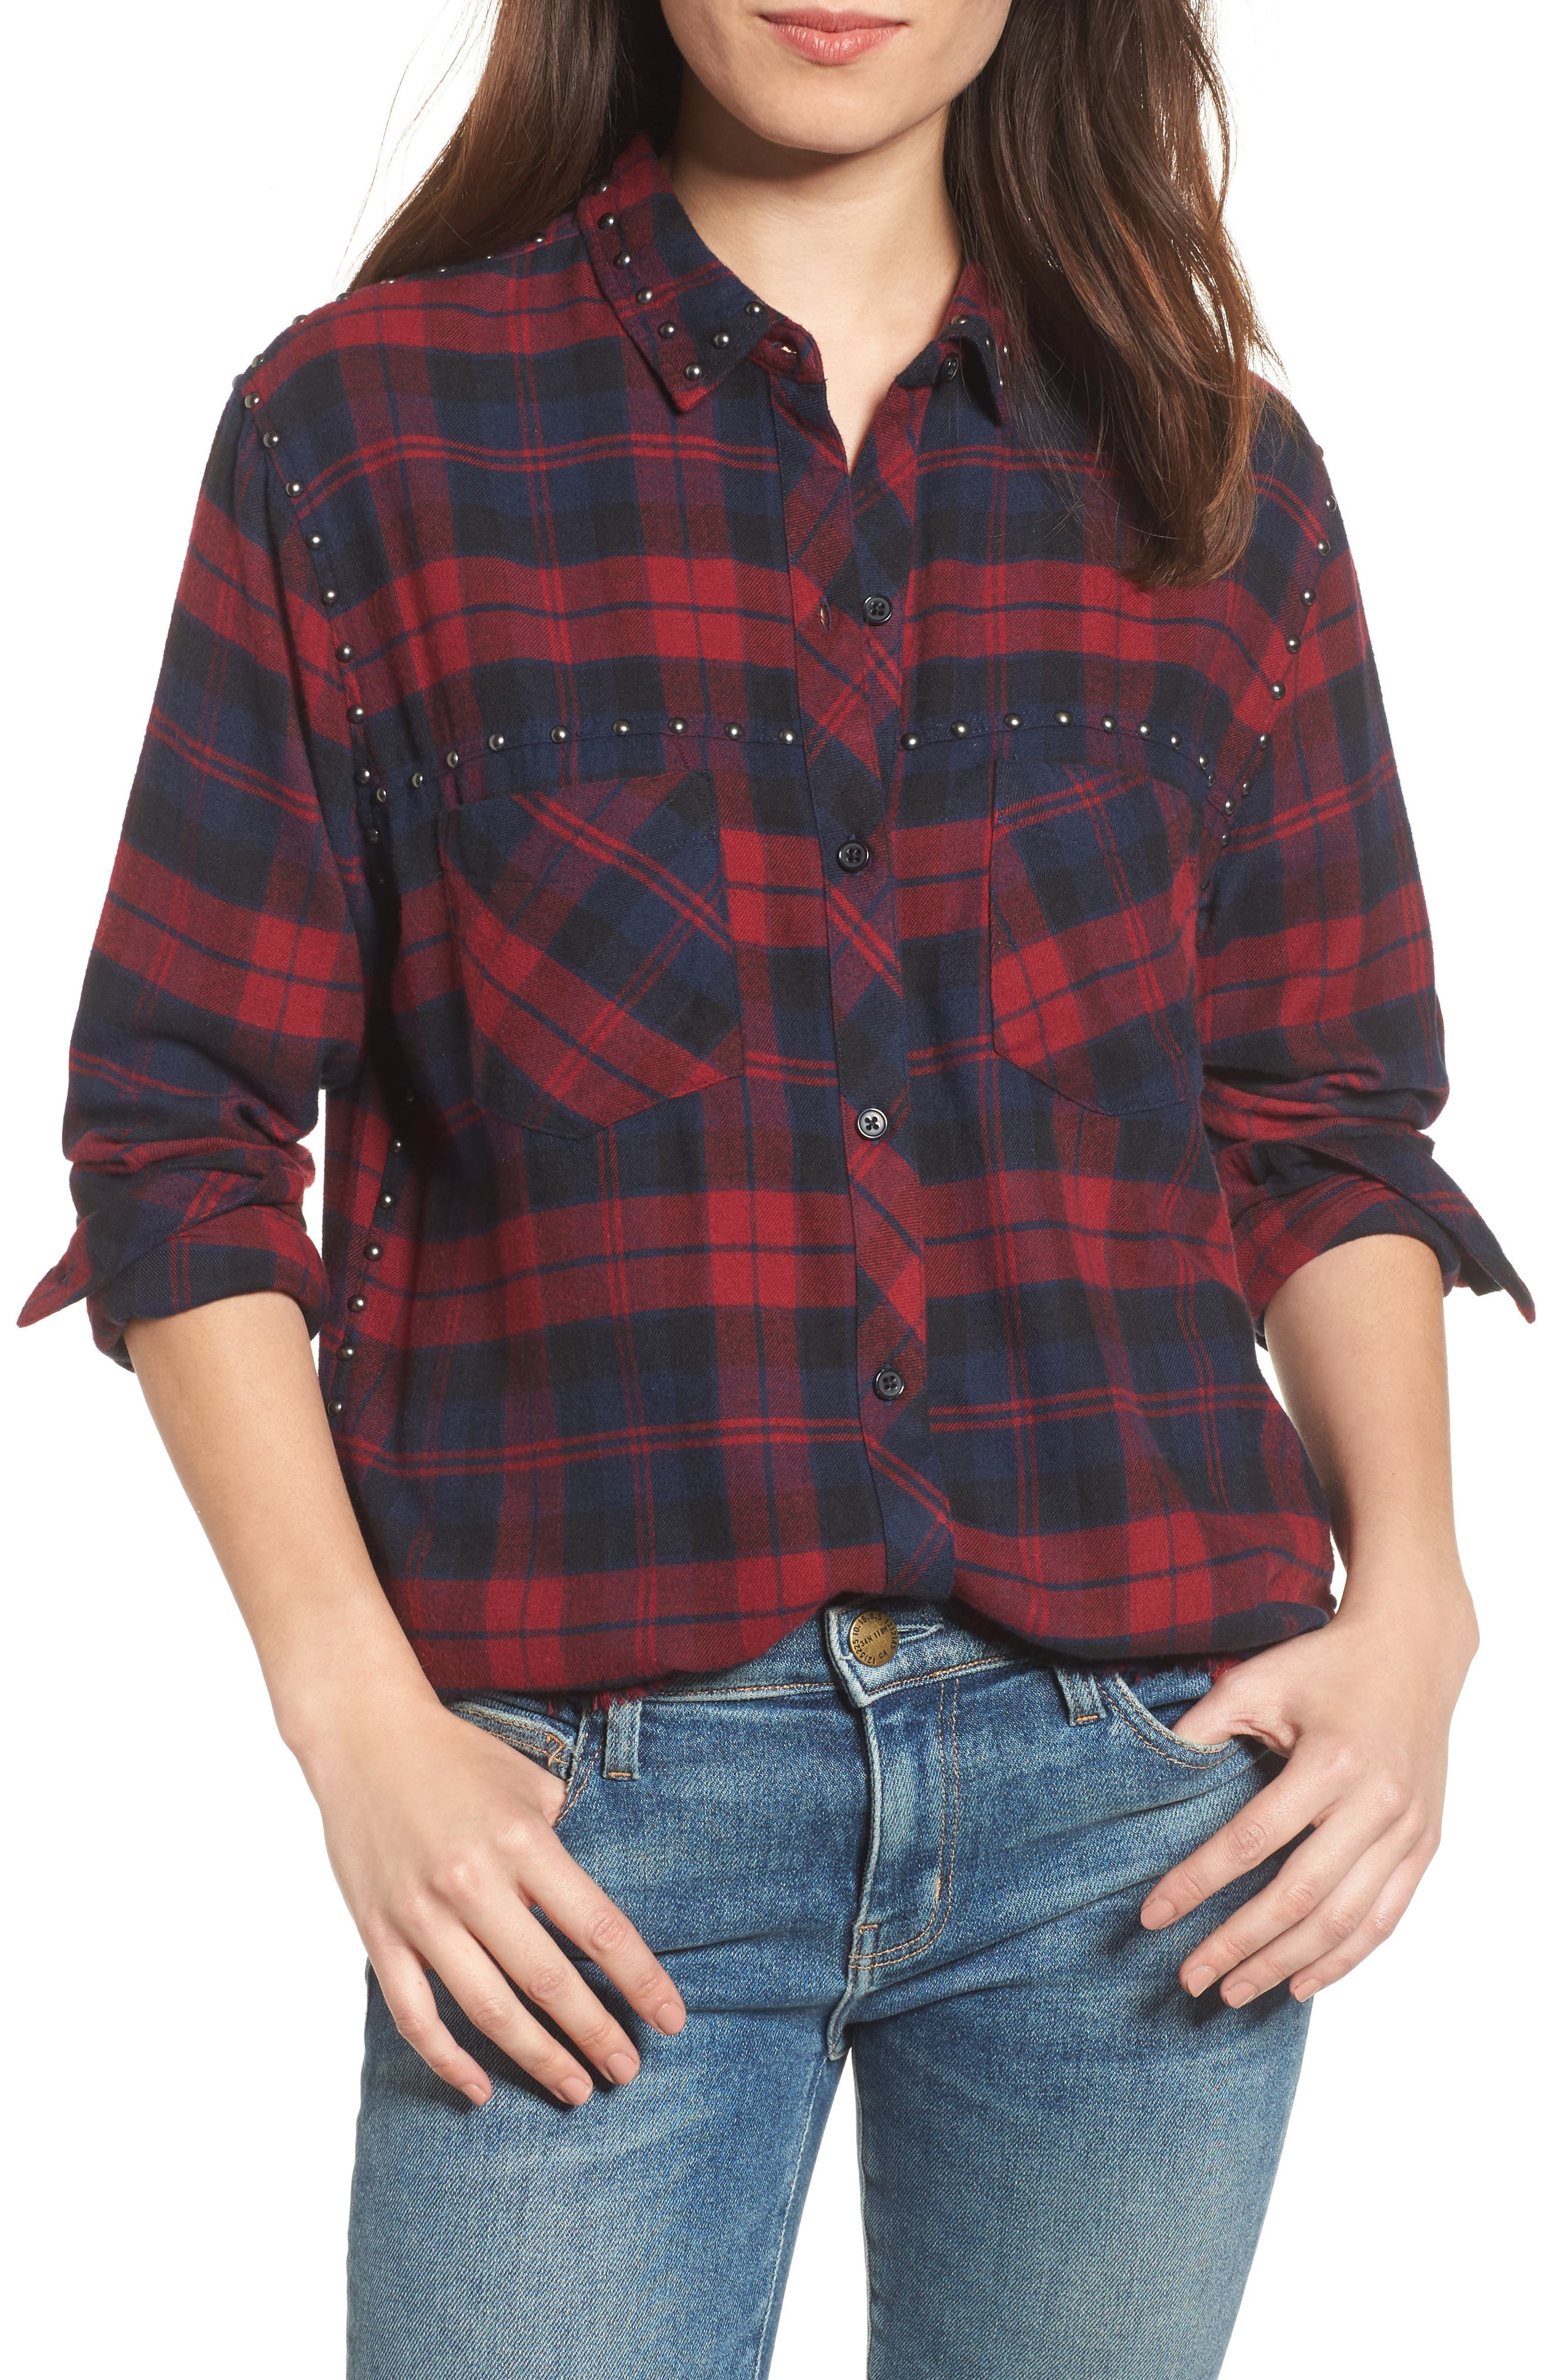 Rex Studded Plaid Shirt,                         Main,                         color, Scarlet/ Navy/ Coal